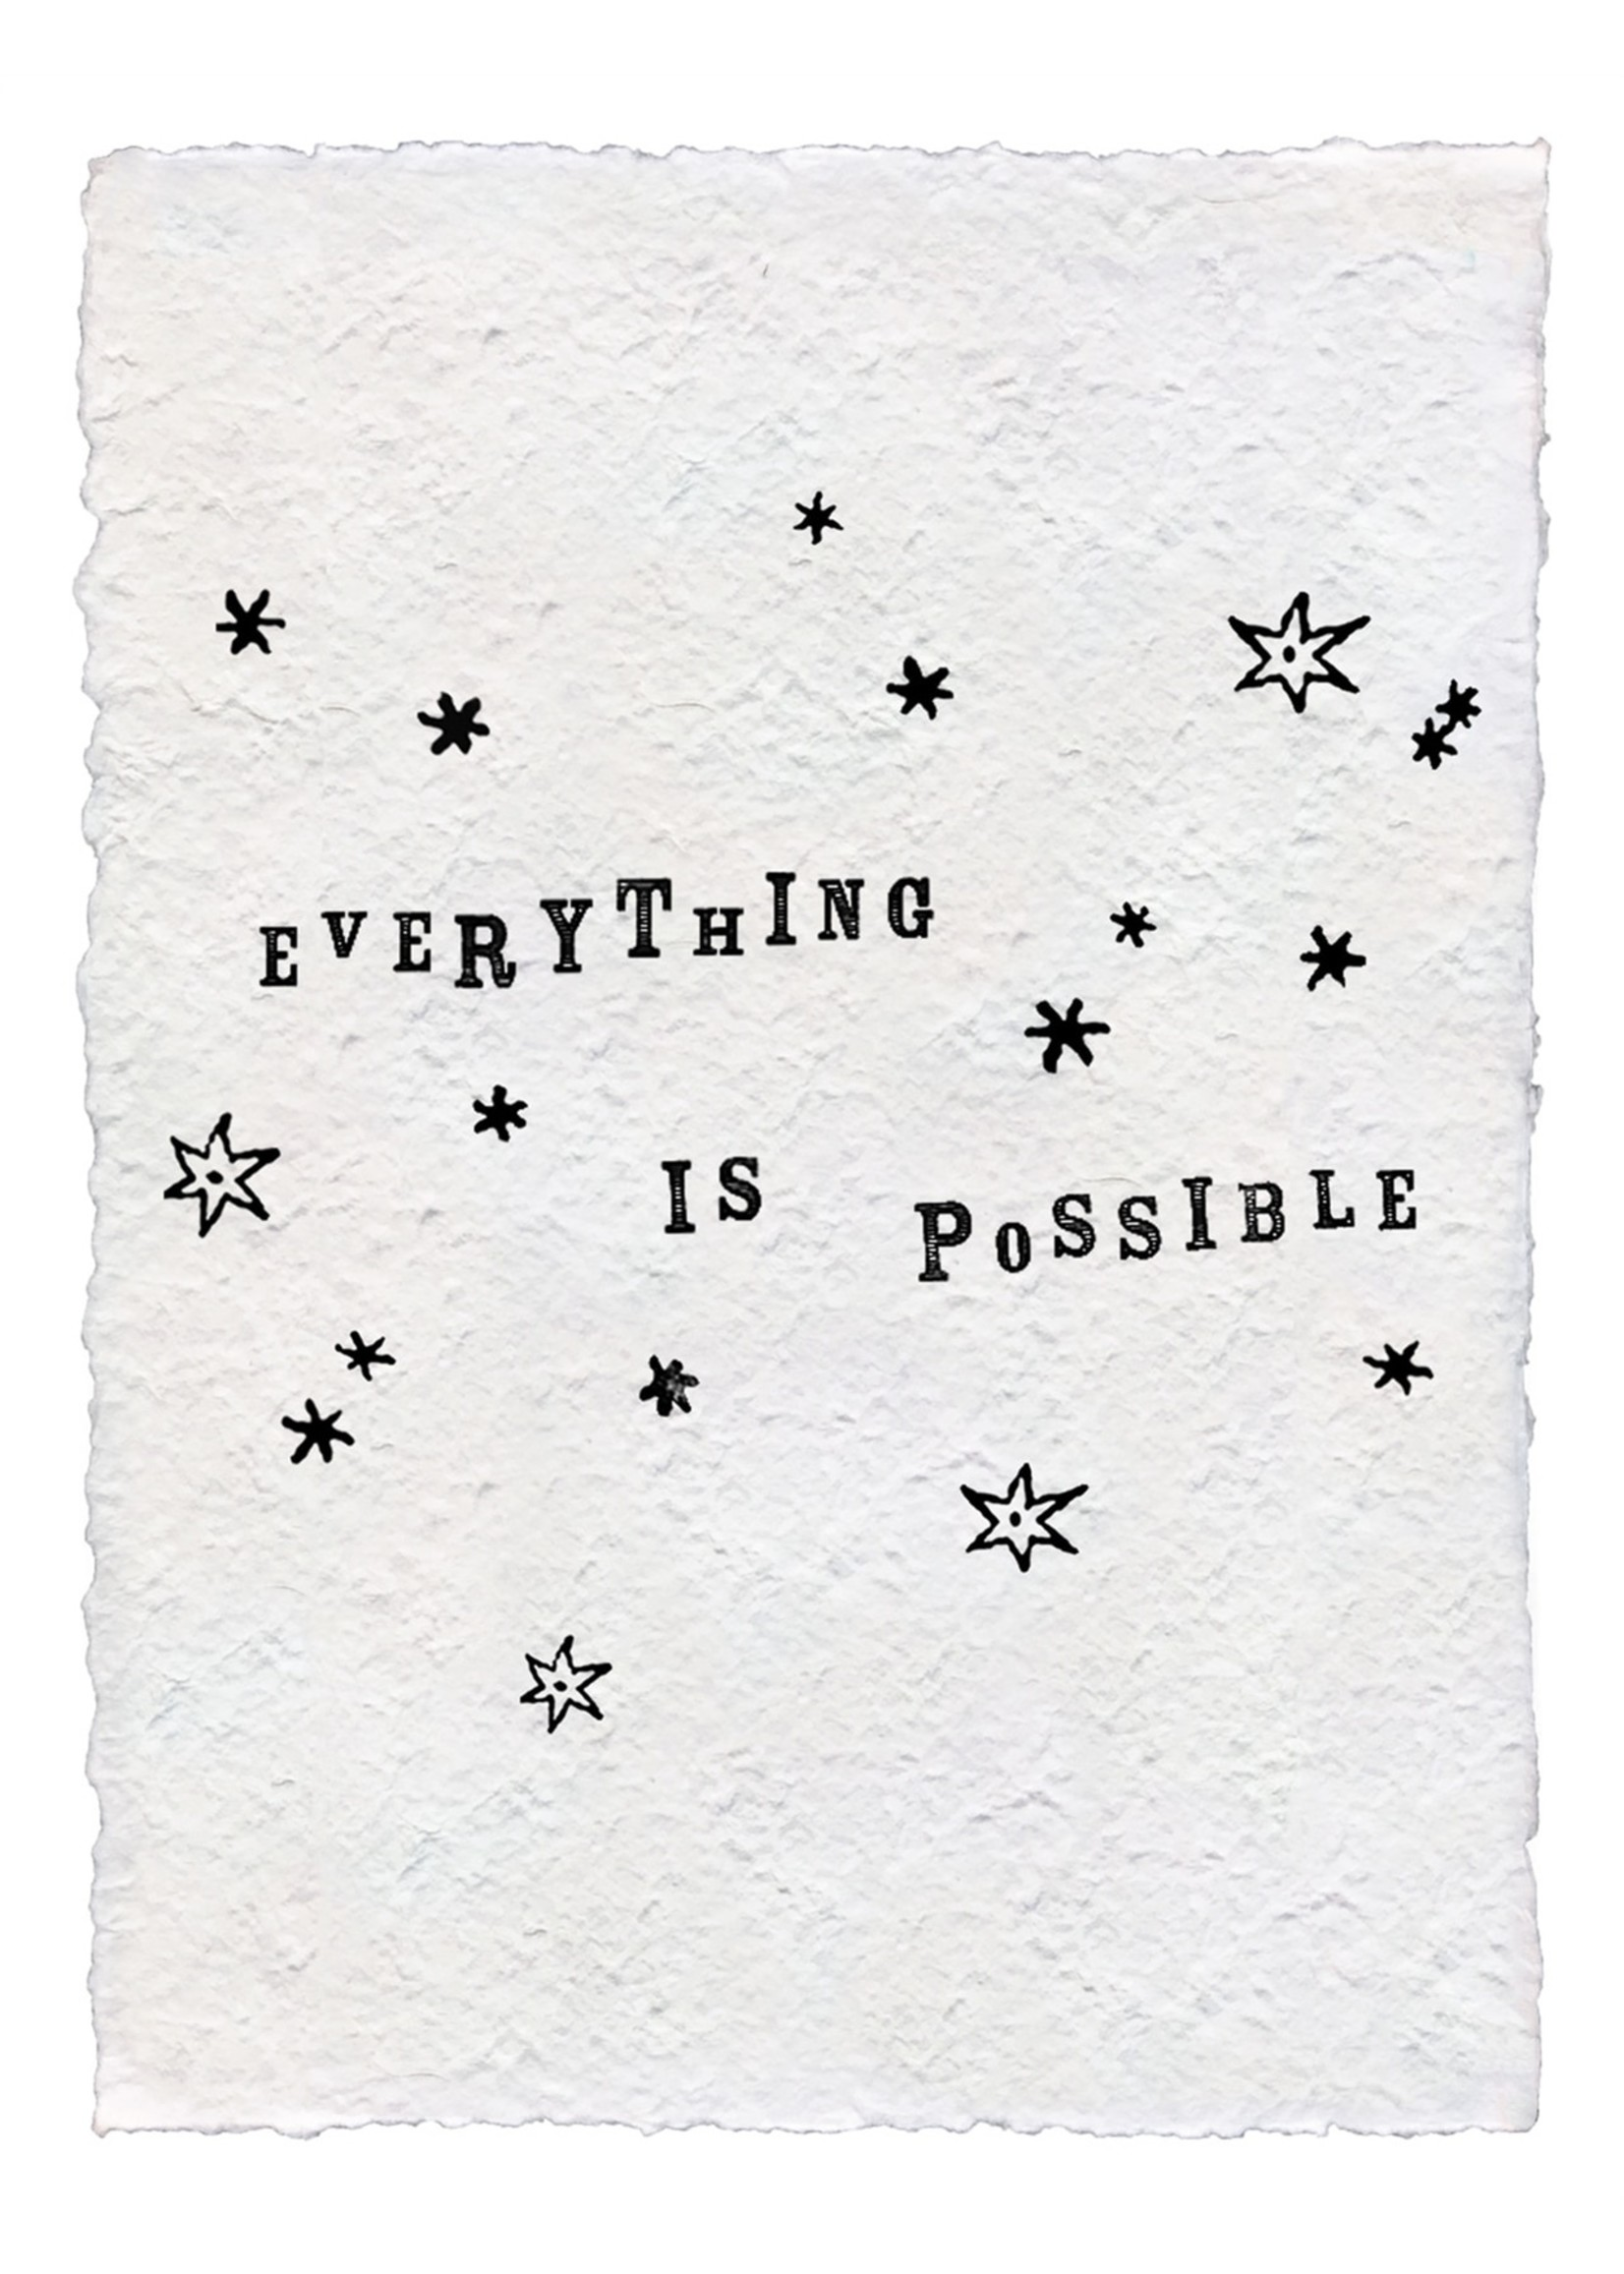 Sugarboo Sugarboo & Co. Paper Print - Everything Is Possible